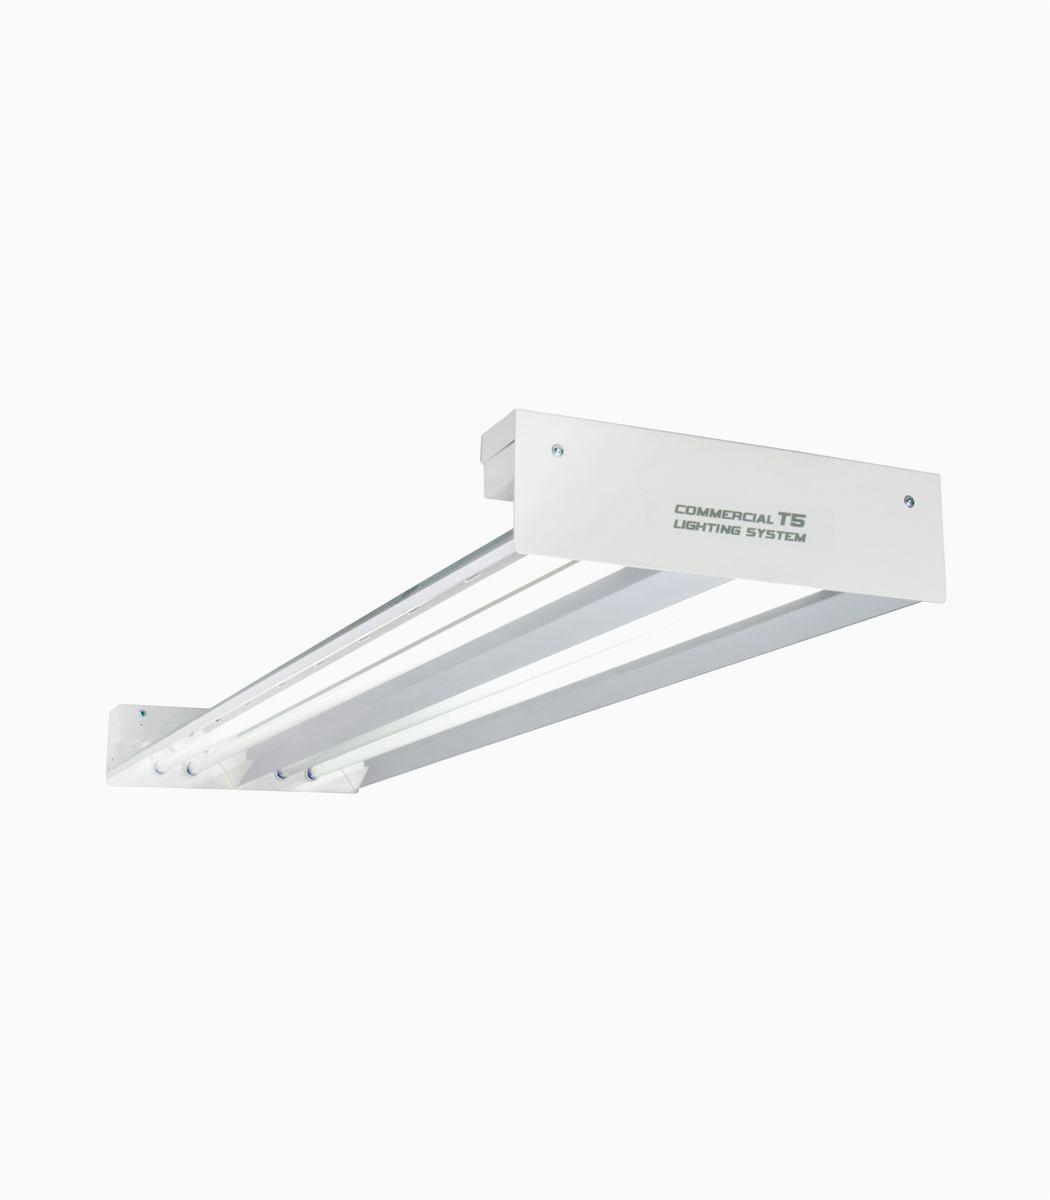 Quantum T5 216W 4' 4-Tube Fixture No Lamps